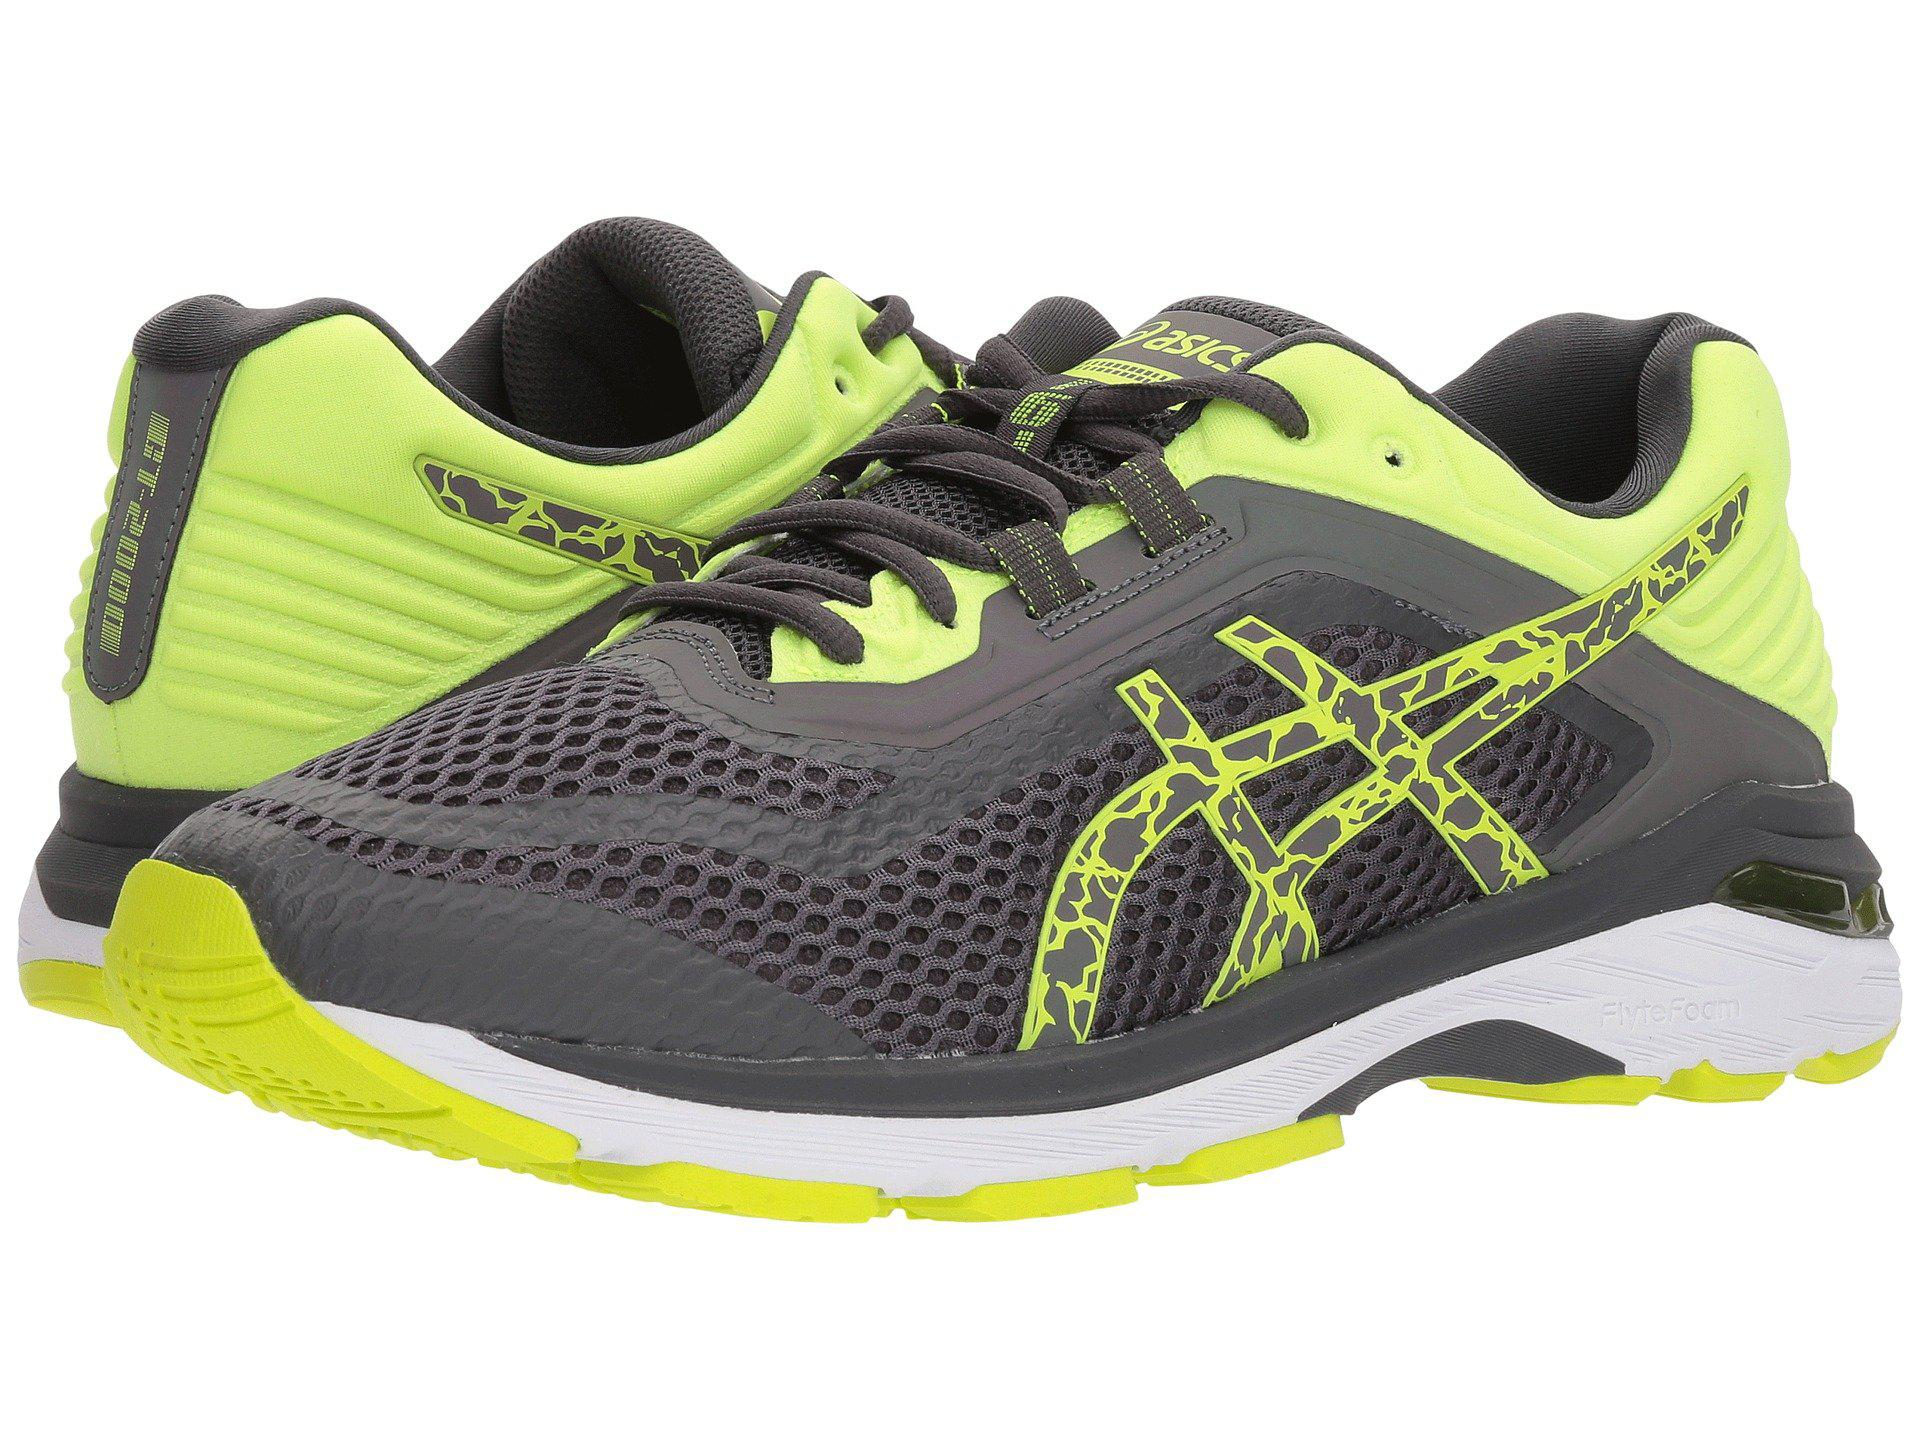 Lyst - Asics Gt-2000 6 Lite-show in Gray for Men - Save 19% f9bca626c4